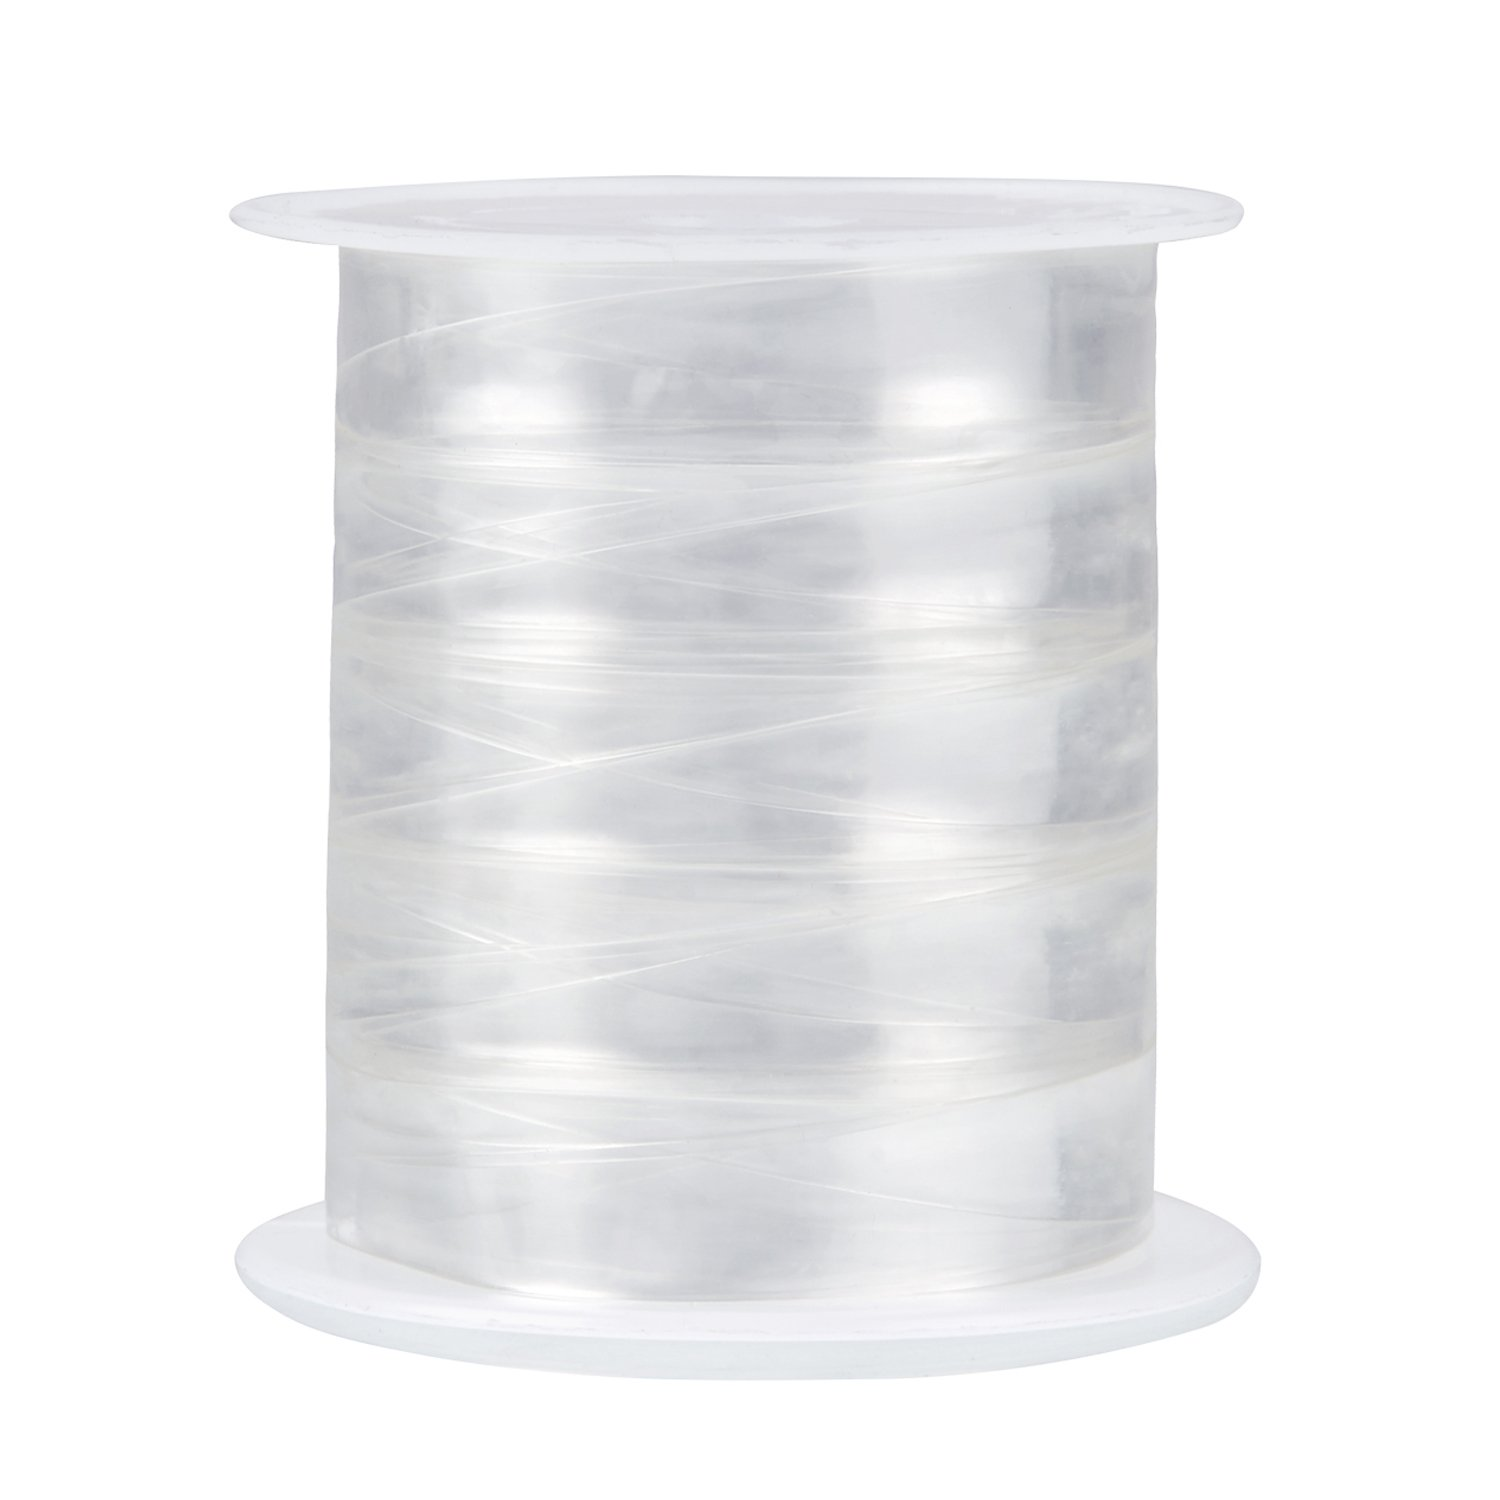 10 Meters Clear Elastic Stretchy Lightweight Elastic for Cloth Sewing Project Sumind 4337000624